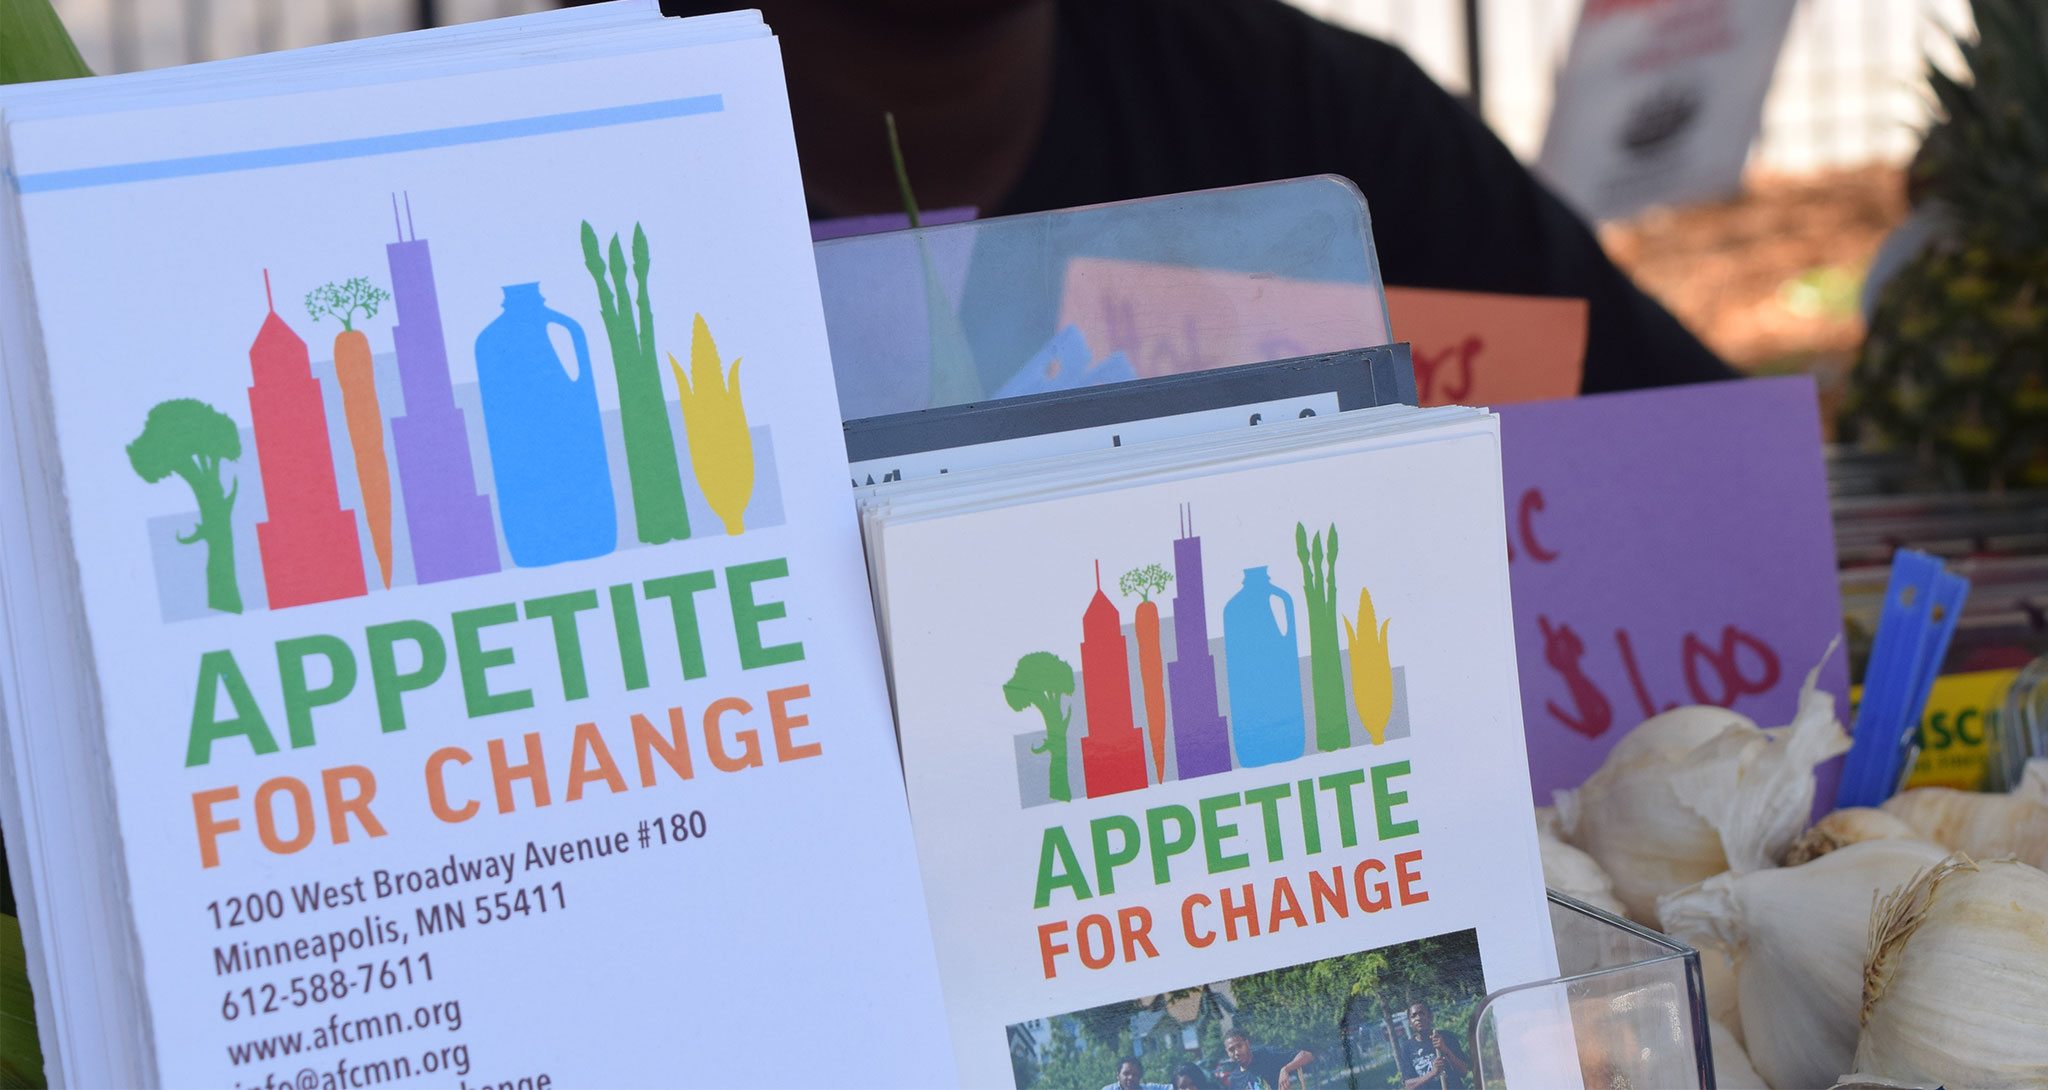 Appetite for change signs at the farmers market